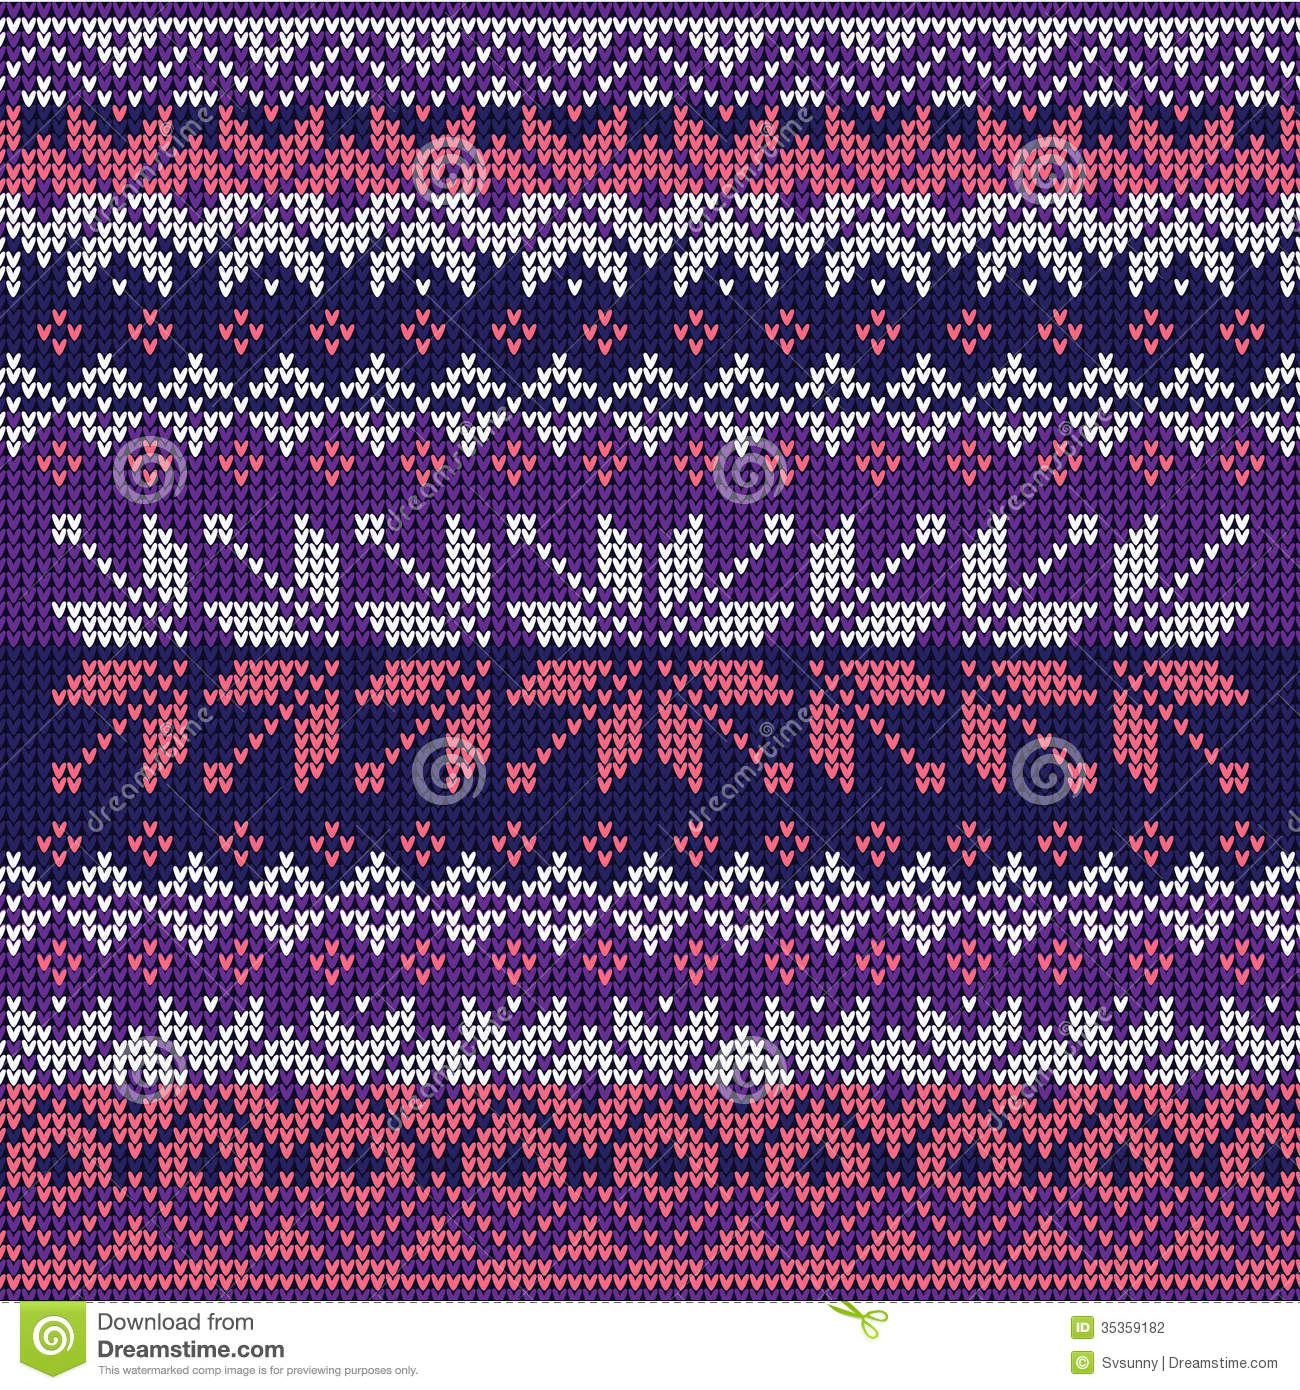 Free Nordic Knitting Patterns : Scandinavian Style Seamless Knitted Pattern. Colors: Blue, White Stock Photog...